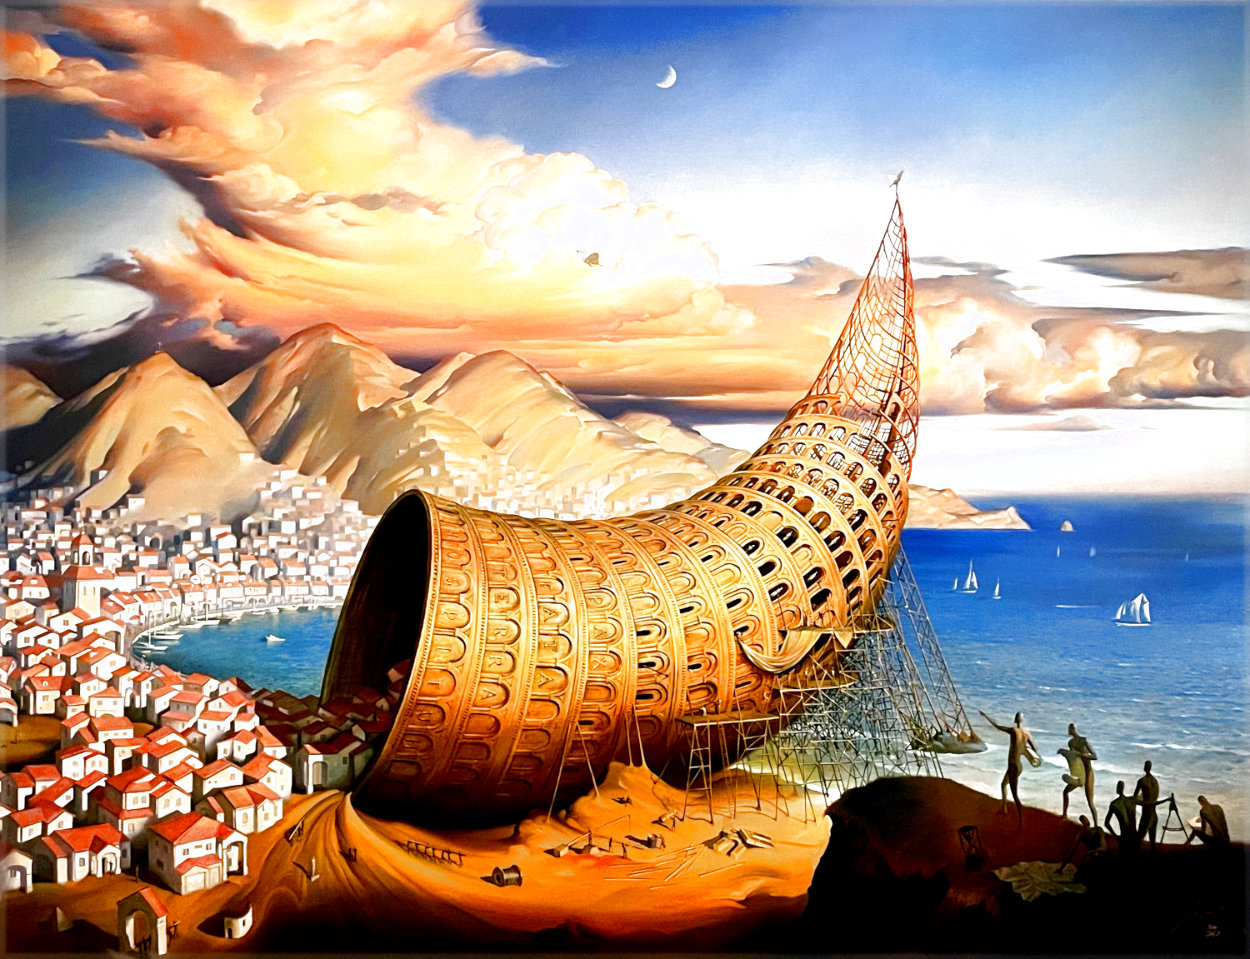 Horn of Babel 2013 Limited Edition Print by Vladimir Kush